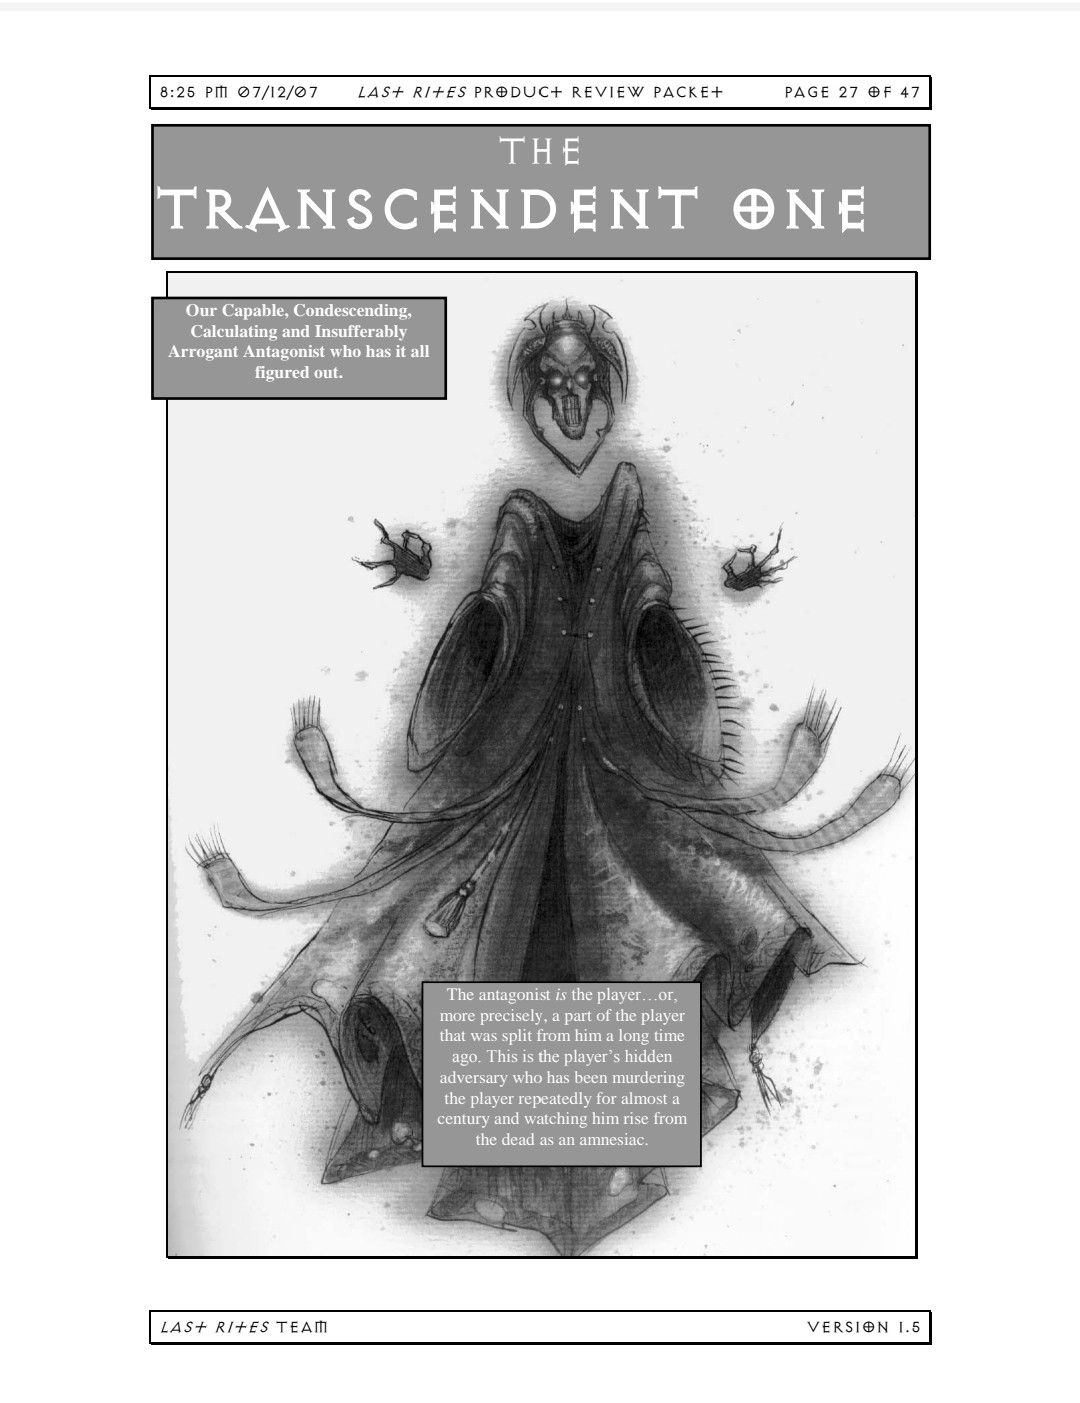 The Transcendent One Planescape Torment Game Character Last